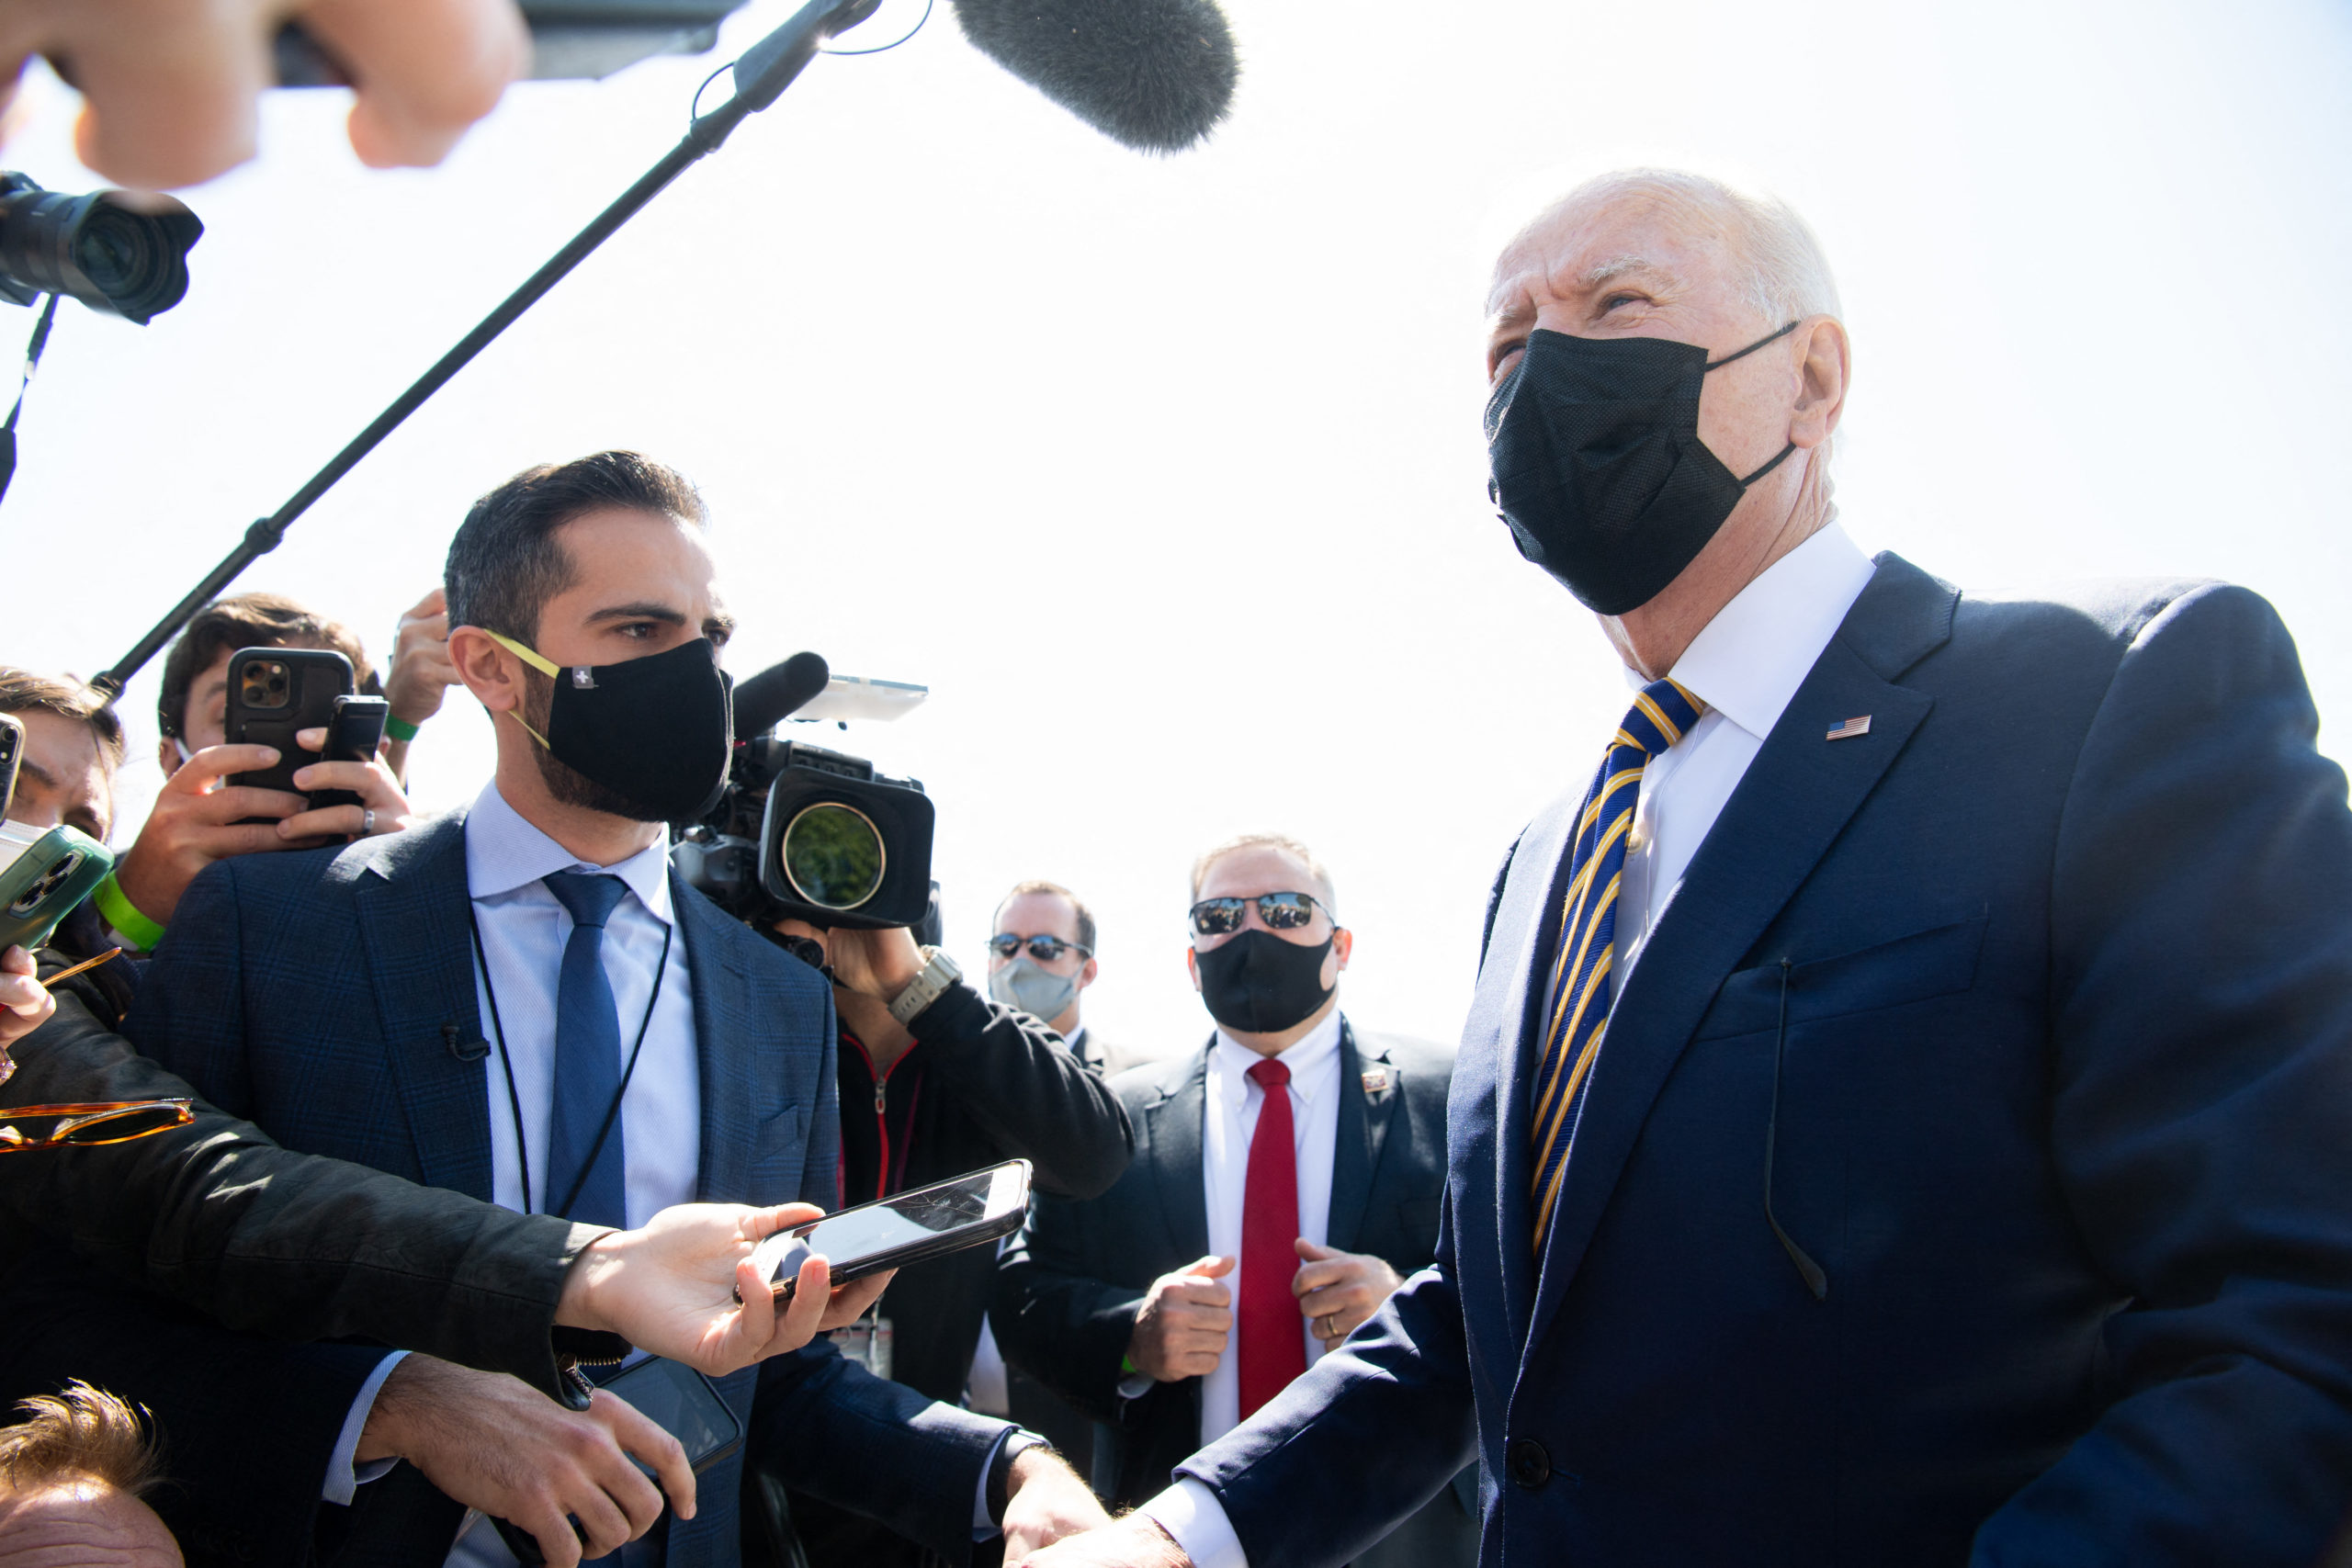 US President Joe Biden speaks to the media after arriving on Marine One at the Ellipse near the White House in Washington, DC, April 5, 2021, following a weekend trip to Camp David, the presidential retreat in Maryland. (Photo by SAUL LOEB/AFP via Getty Images)